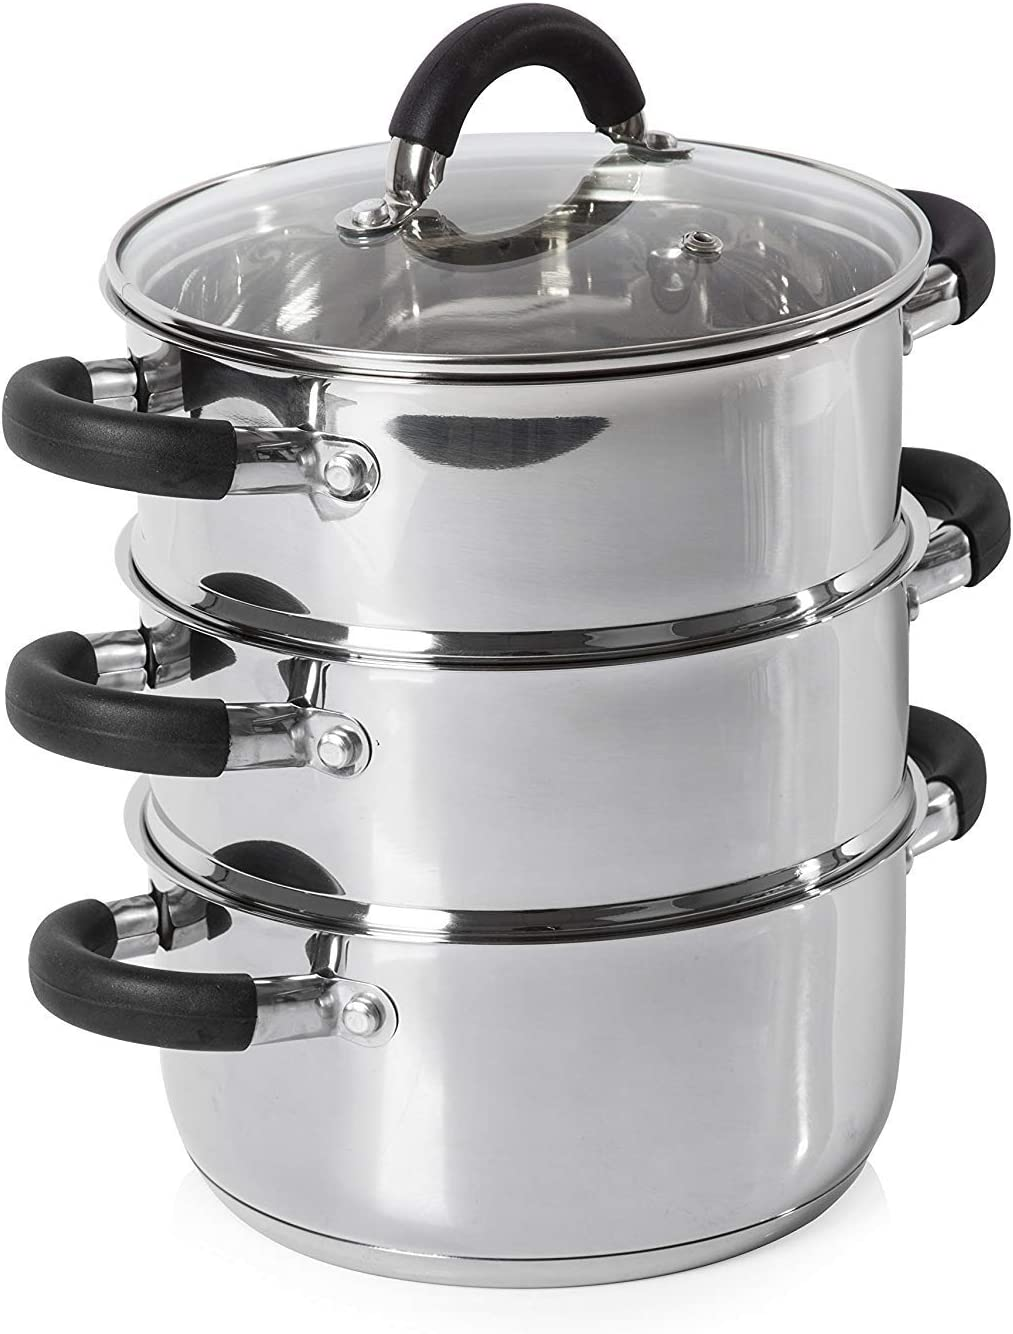 OIEILI Tower Essentials 3-Tier Steamer Lid 2021 All stores are sold model with and Glass Polish